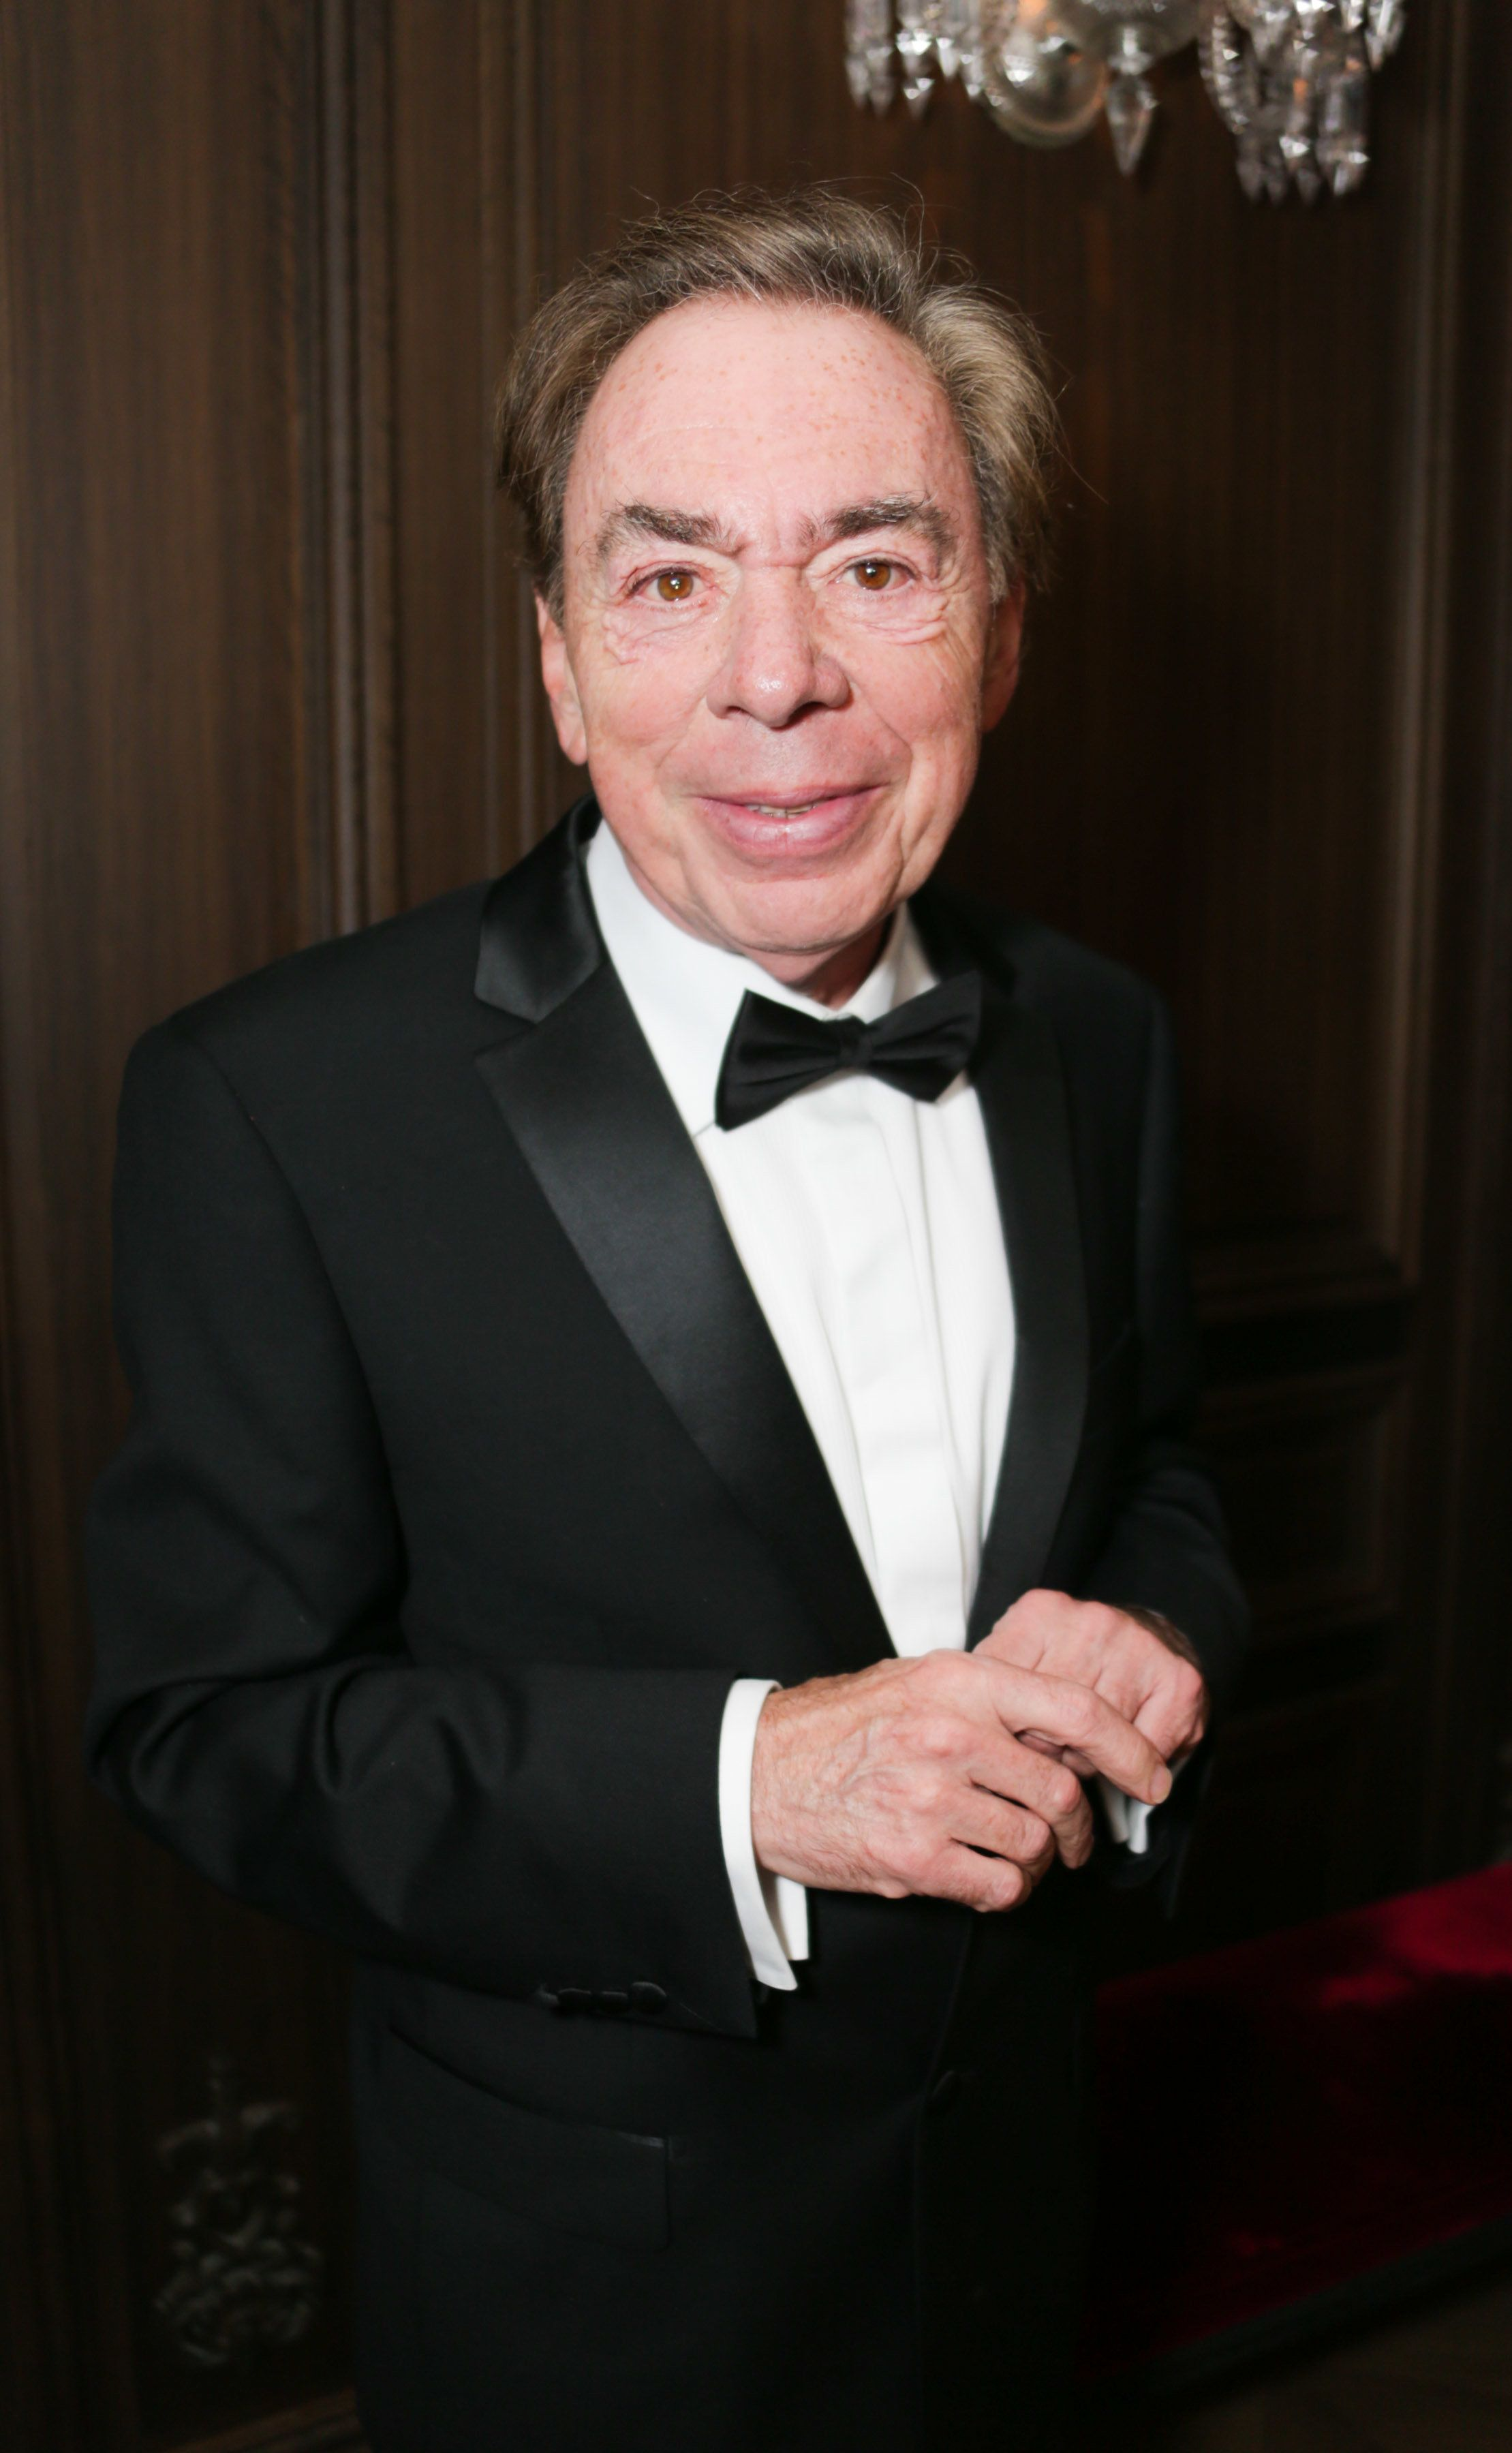 NEW YORK, NY - JUNE 12:  Andrew Lloyd Weber attends DKC/O&M's Annual Late Night Tony Awards Party at Baccarat Hotel on June 12, 2016 in New York City.  (Photo by Victor Hugo/Patrick McMullan via Getty Images)